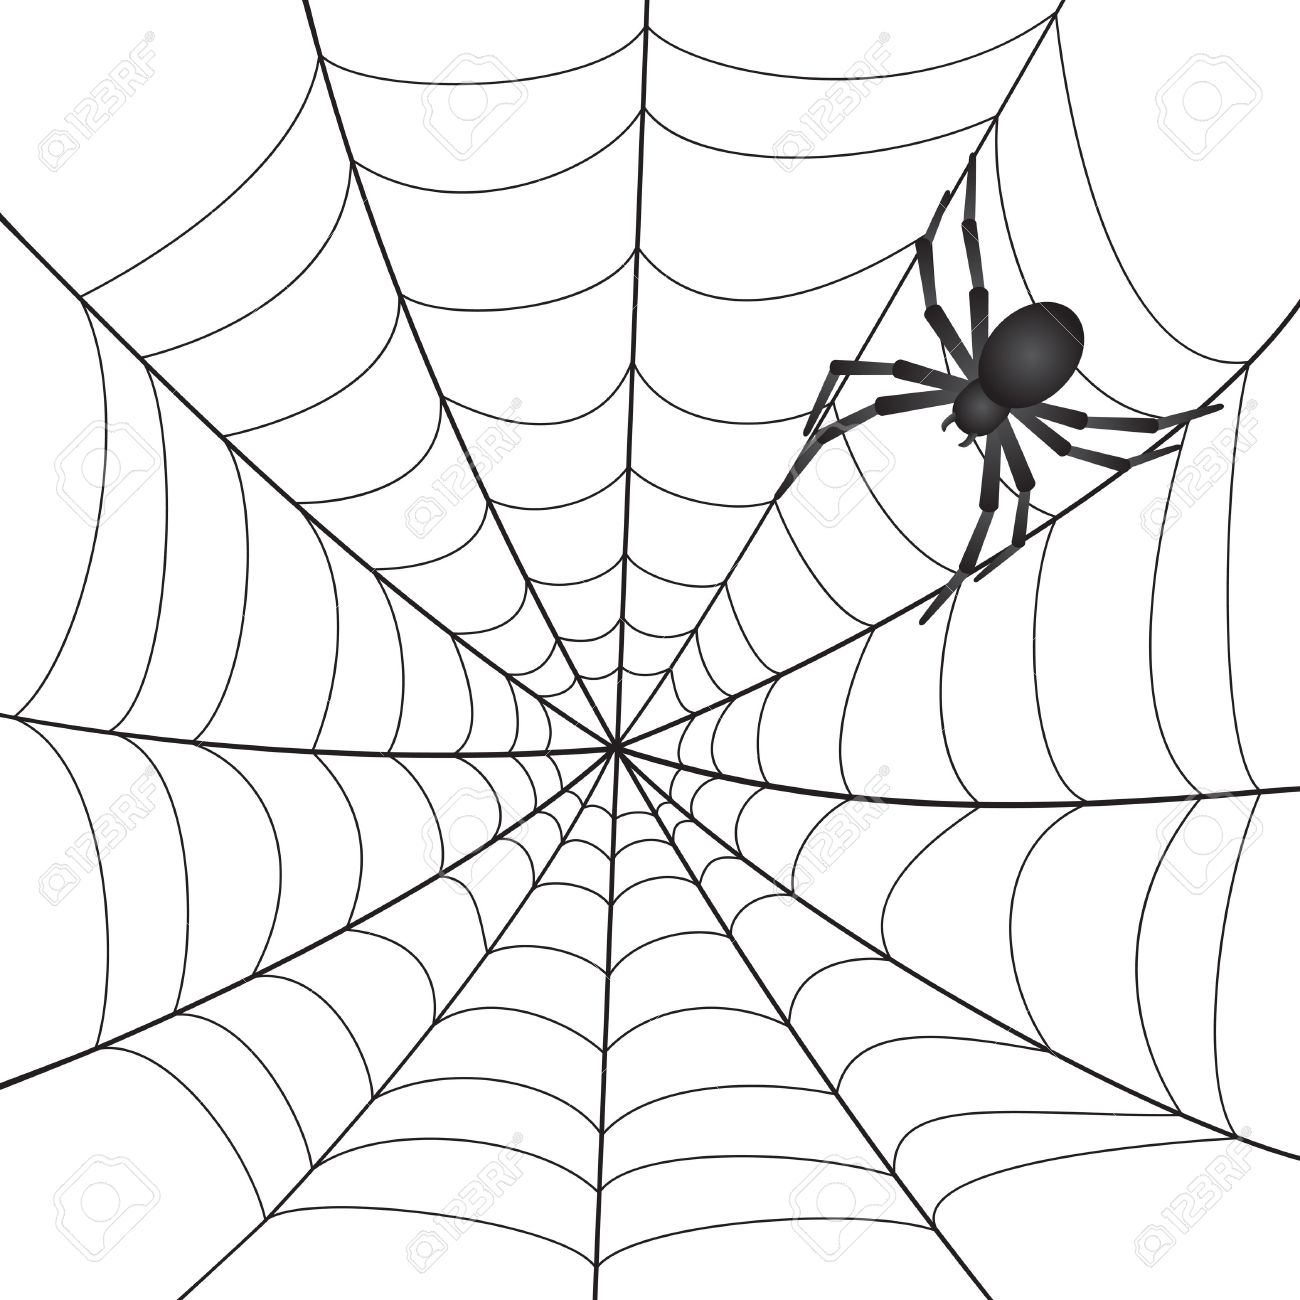 White spider web clipart image free download Spiderweb clipart New Black white spider web clip art black ... image free download